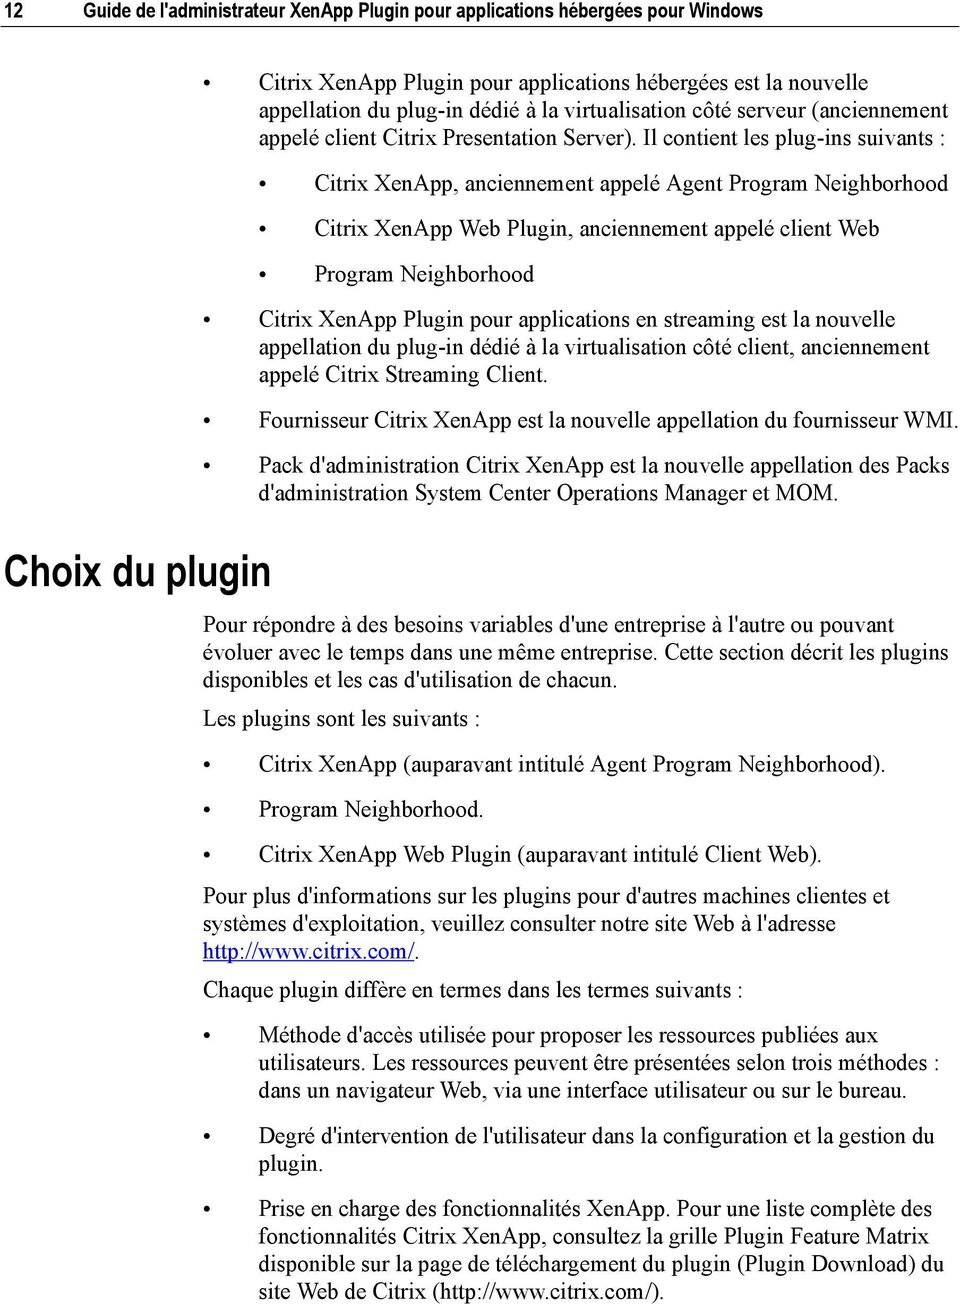 Il contient les plug-ins suivants : Citrix XenApp, anciennement appelé Agent Program Neighborhood Citrix XenApp Web Plugin, anciennement appelé client Web Program Neighborhood Citrix XenApp Plugin